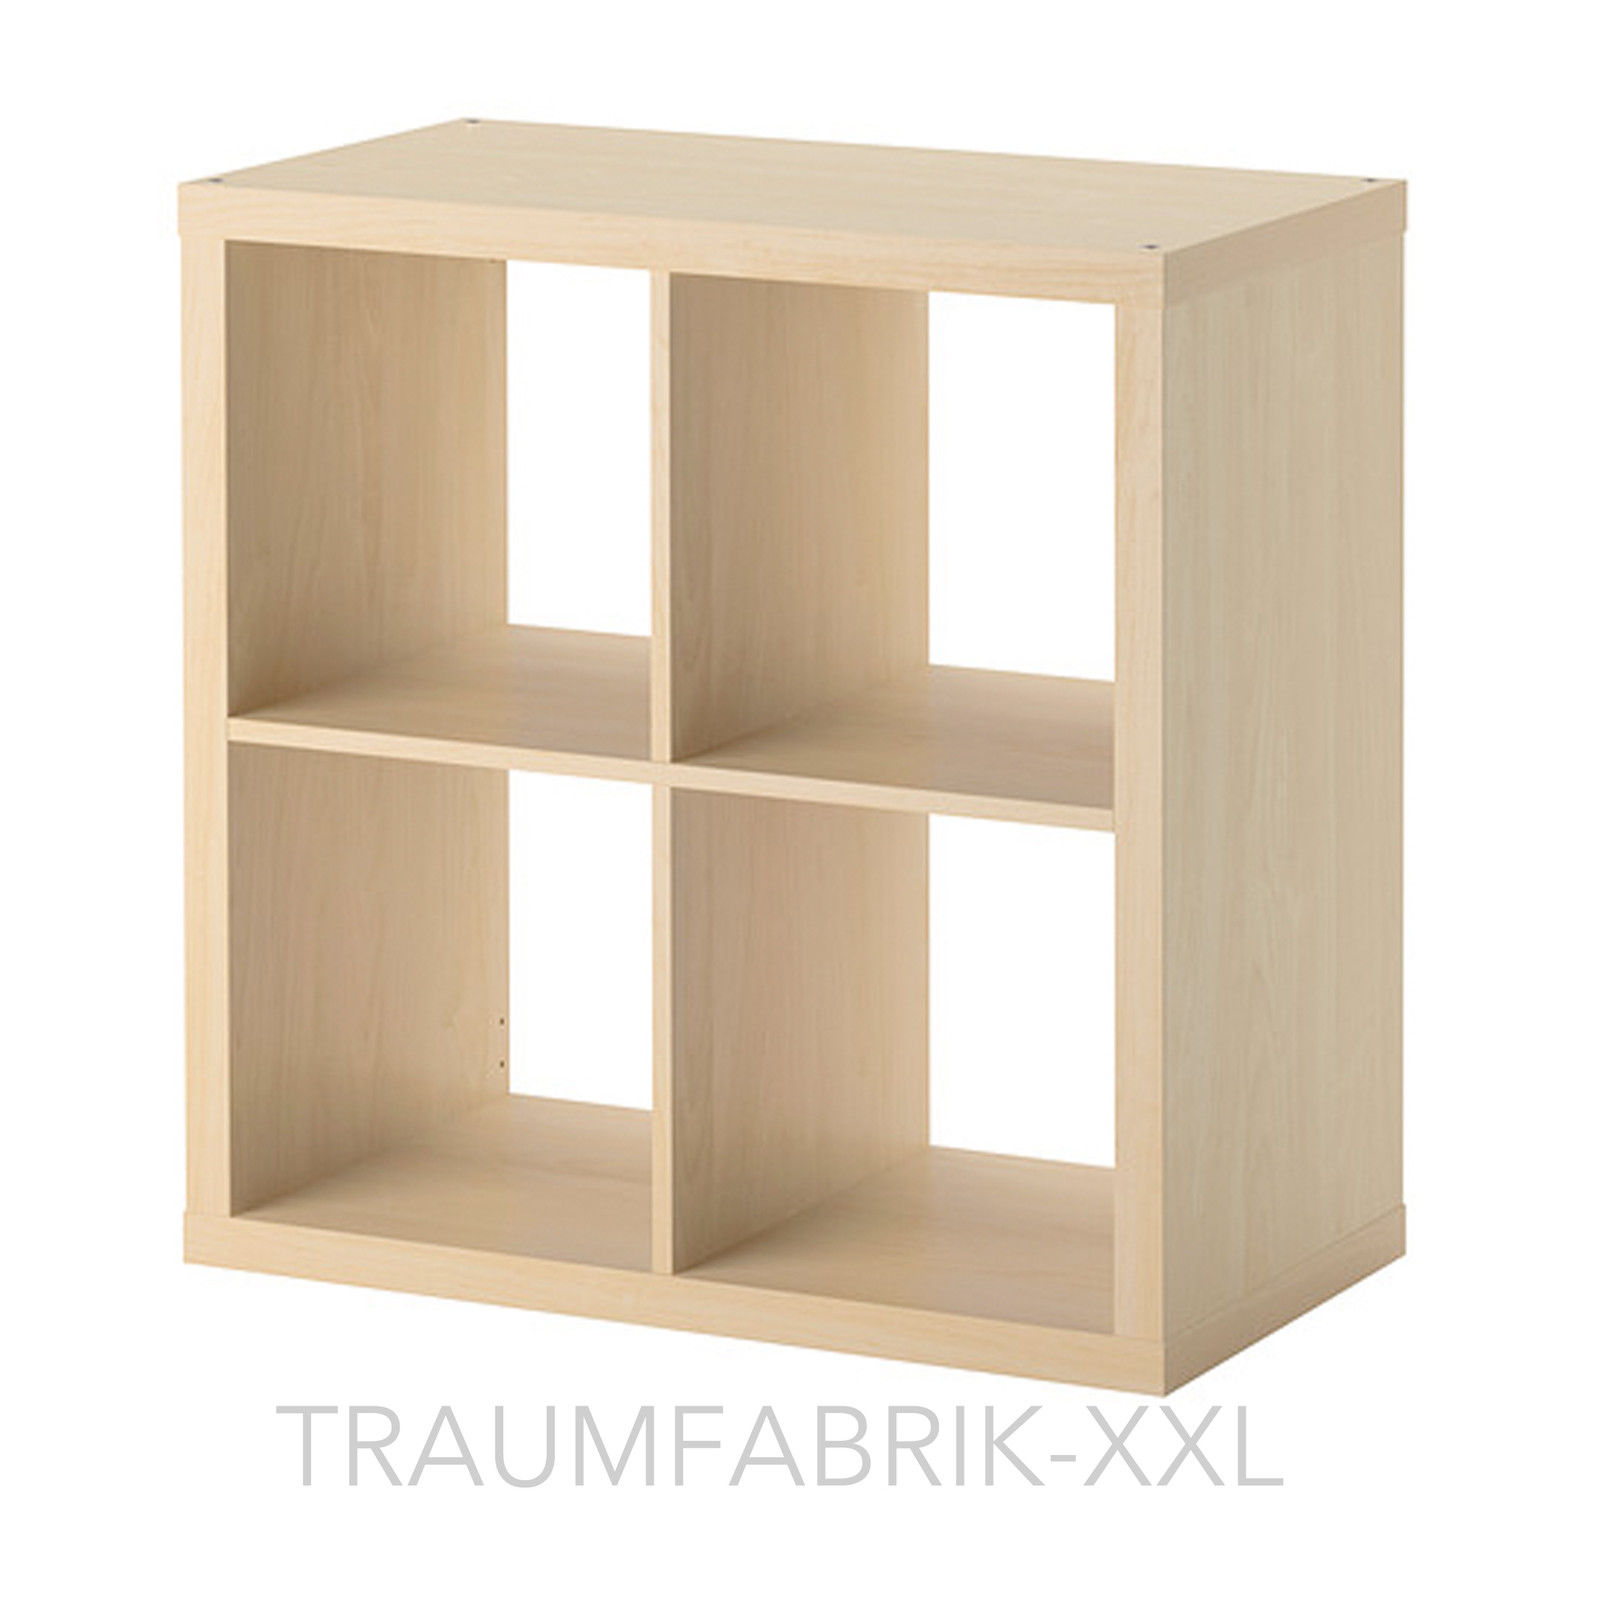 Wandregal bücherregal  IKEA Regal Regale Birke ( 77 x 77cm ) Wandregal Bücherregal ...